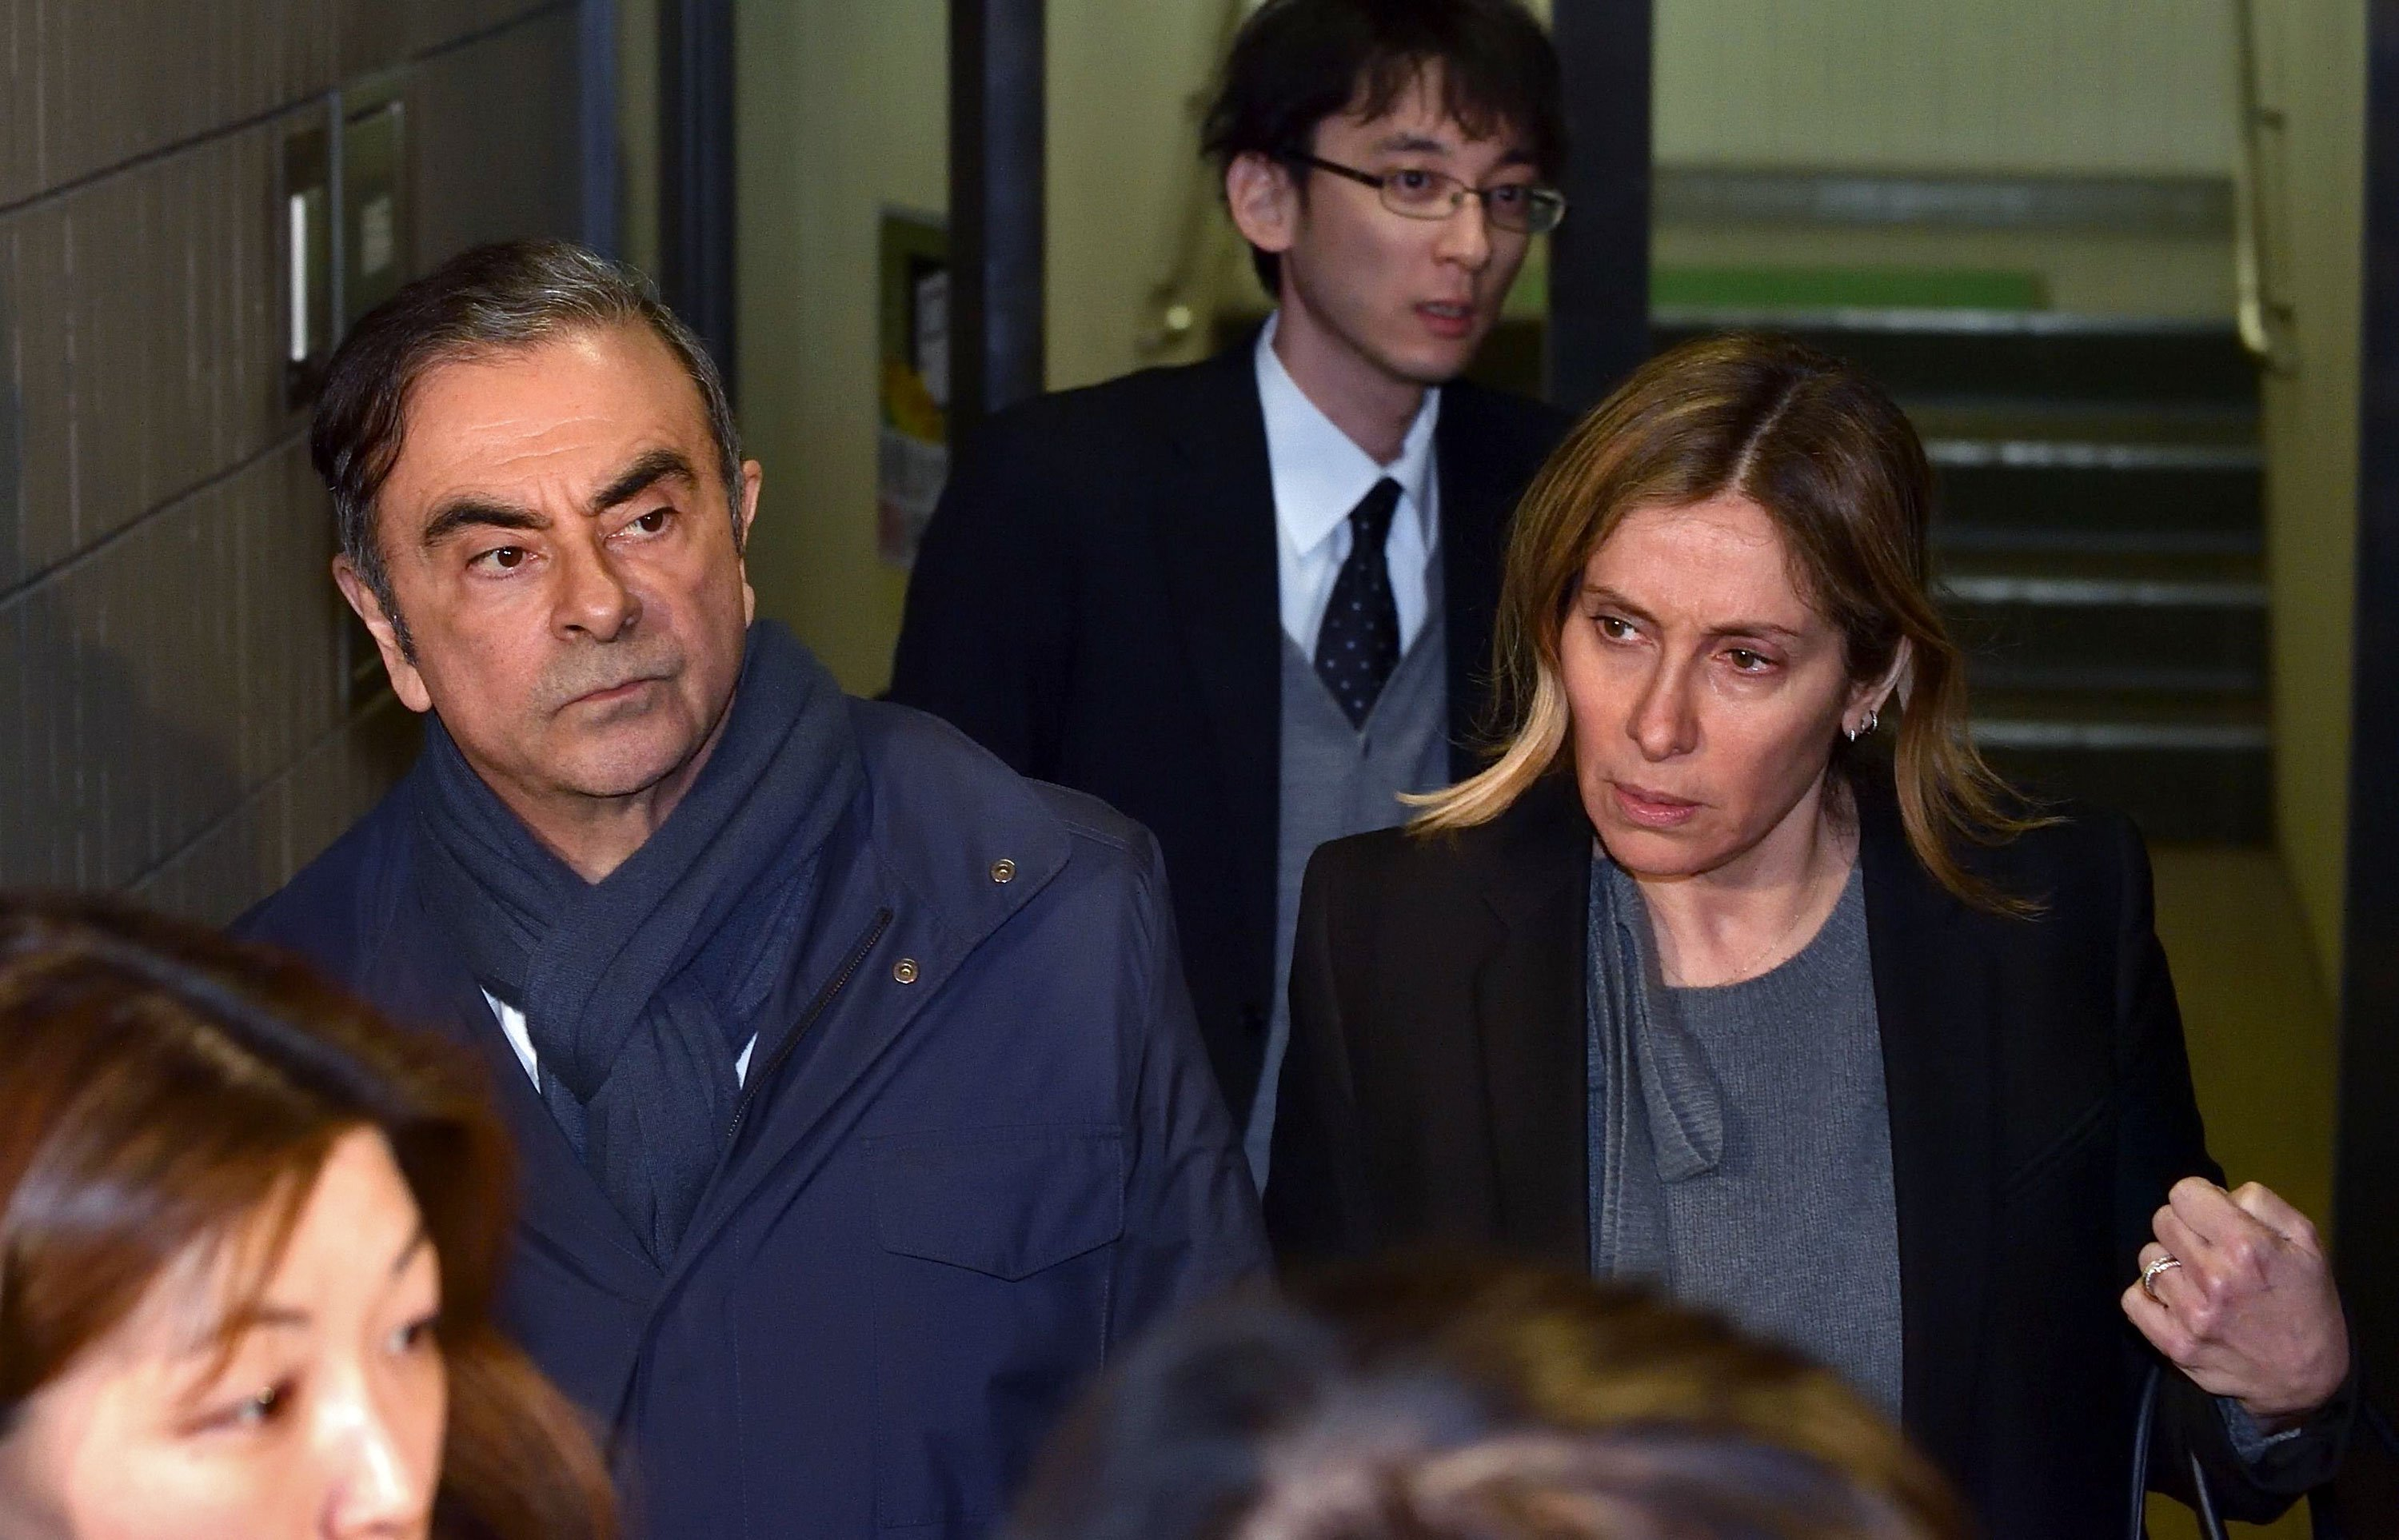 Carlos Ghosn's wife asks French President Macron to help her husband